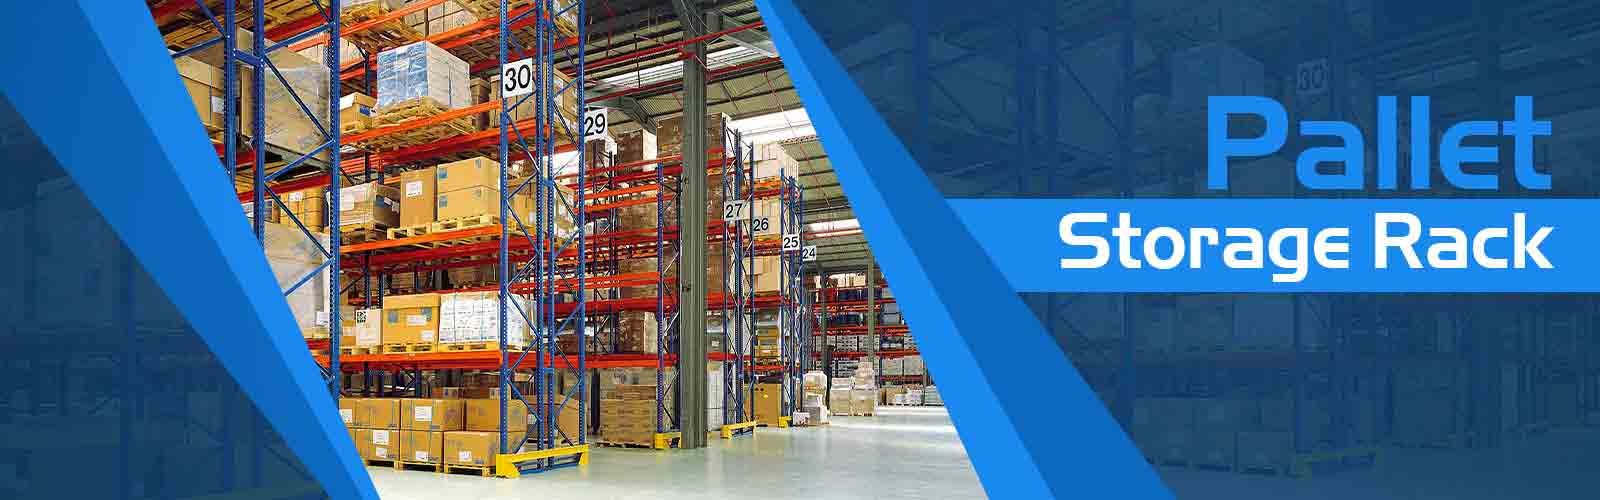 Pallet Storage Rack Manufacturers In Dhankot